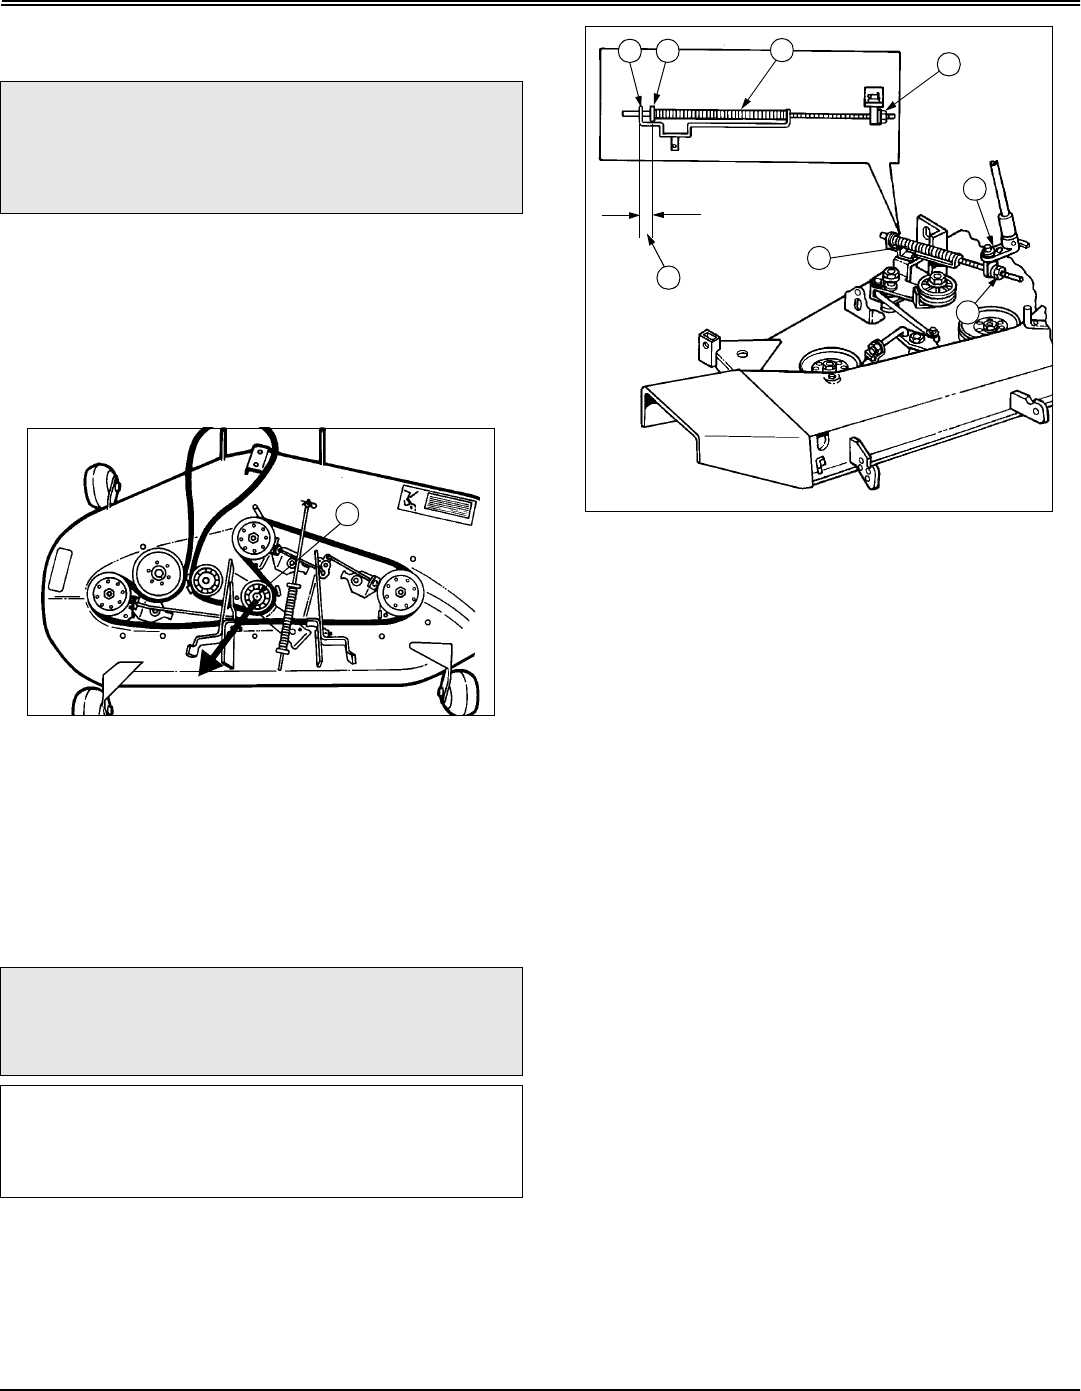 b5e9d01c 9017 4e04 82a5 0d387216d6f2 bg23 page 35 of scotts lawn mower s2546 user guide manualsonline com scotts s2554 wiring schematic at bakdesigns.co